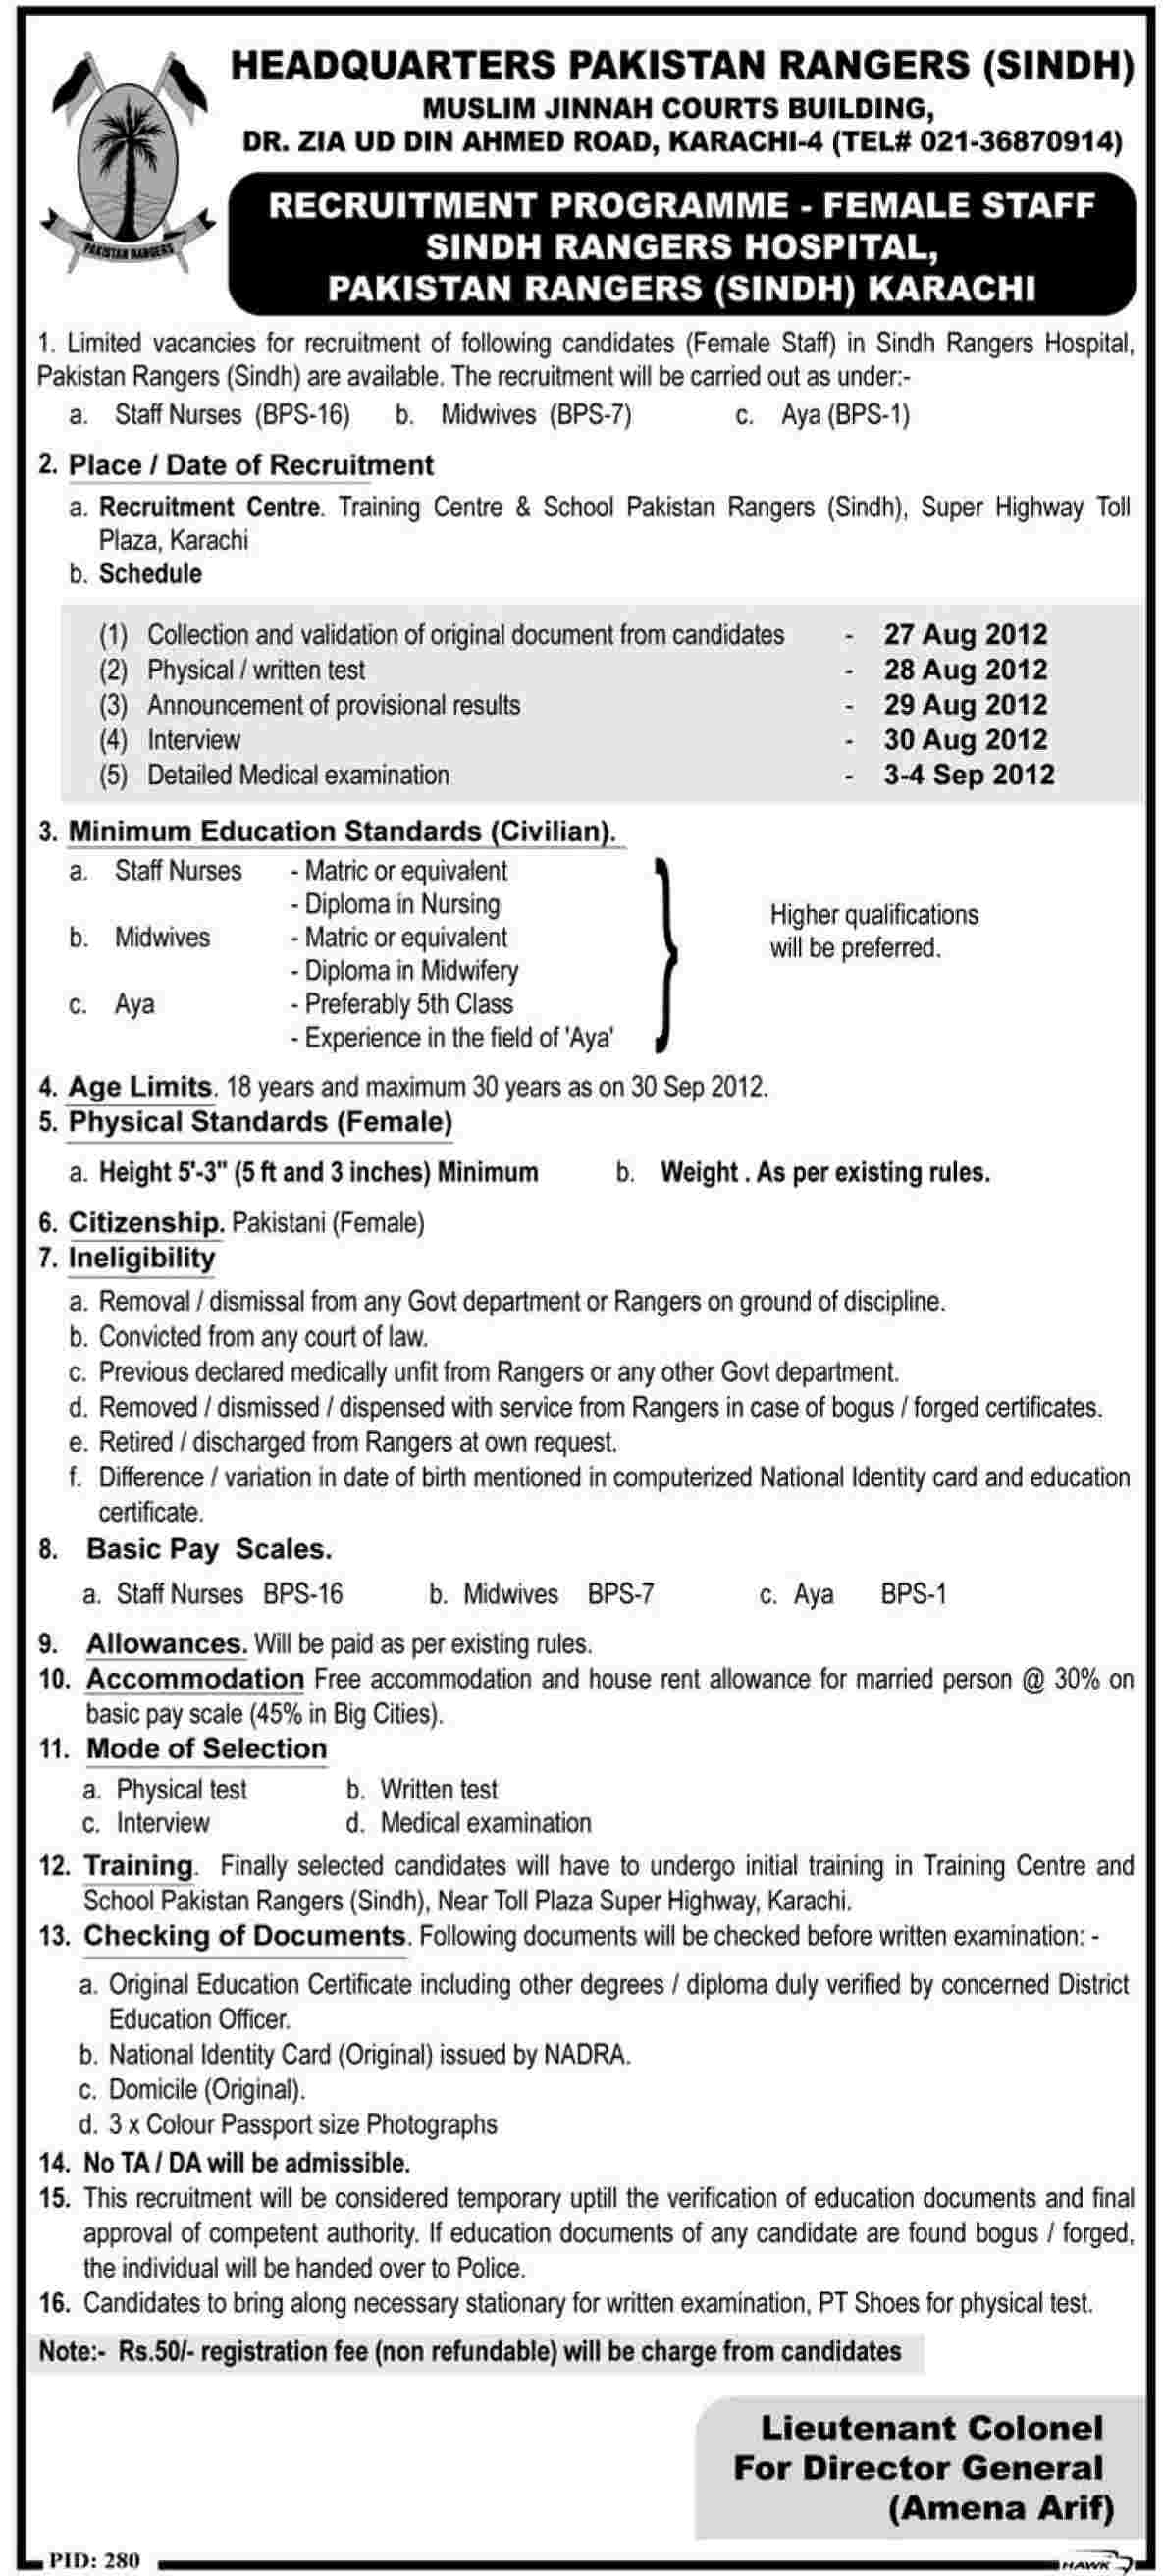 Join Pakistan Rangers Sindh as Ladies Staff Nurse, Midwife and Aya (Government Job)